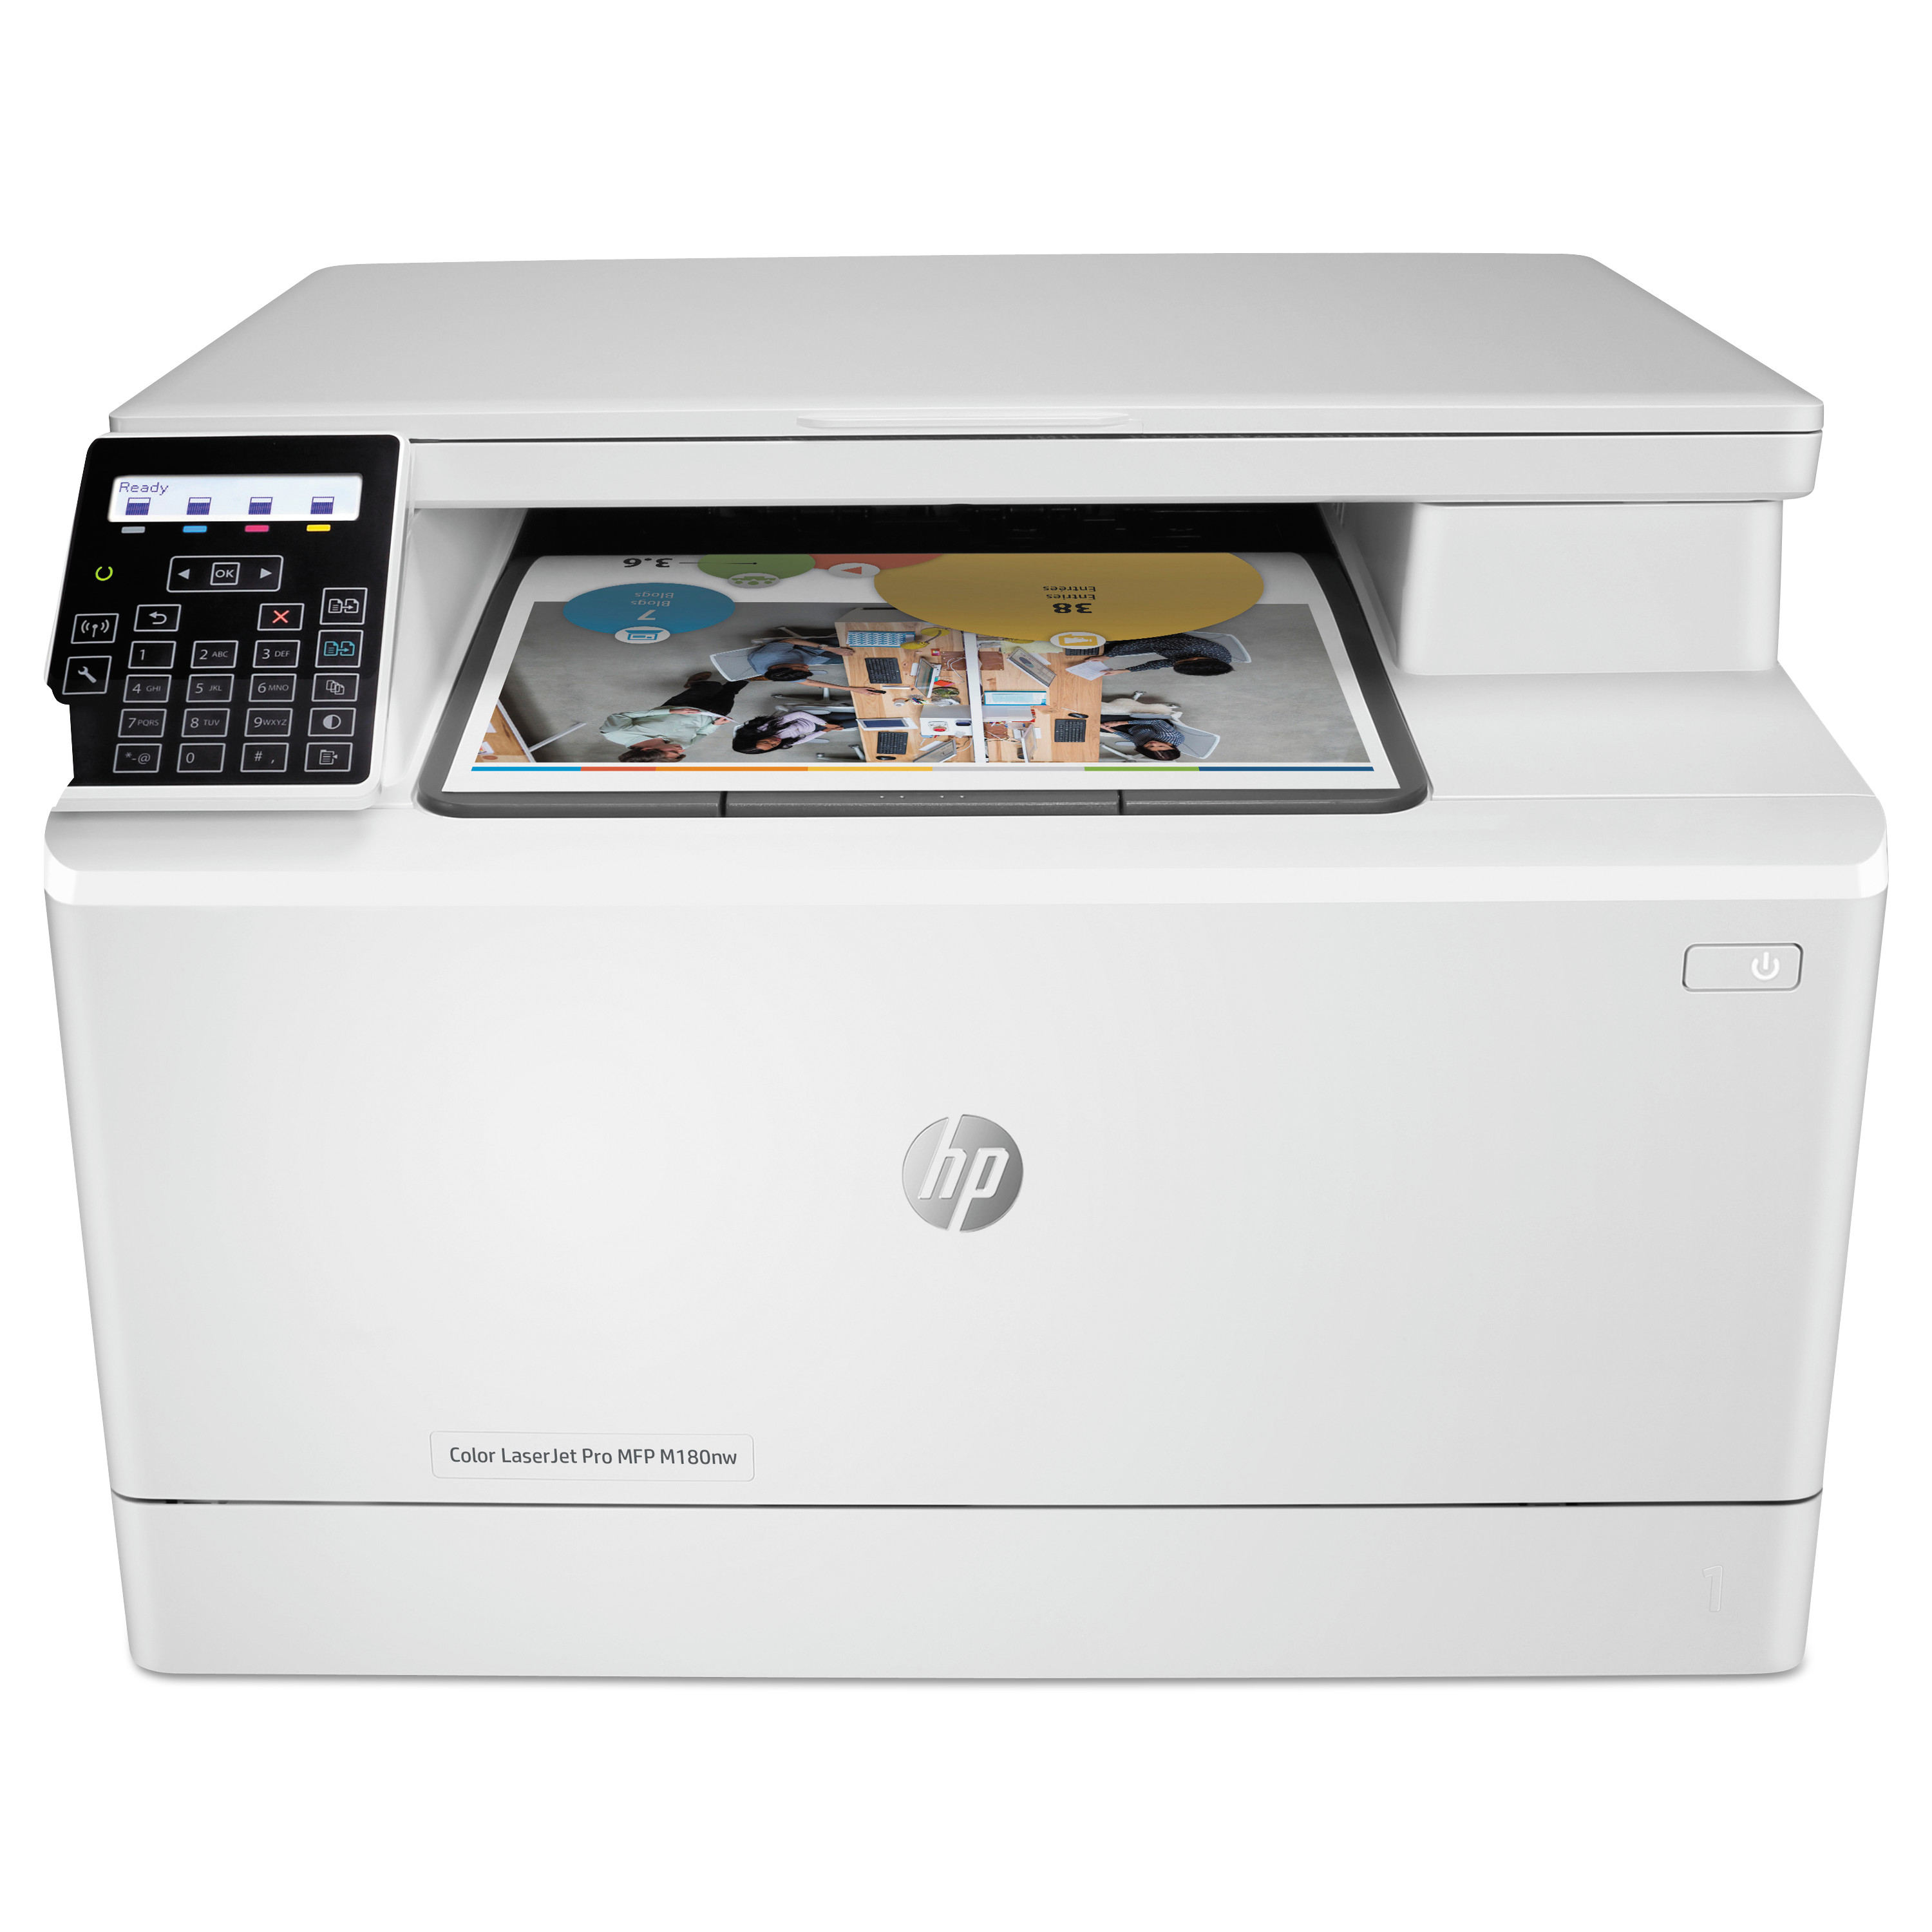 HP Color LaserJet Pro MFP M180nw Multifunction Laser Printer, Copy/Print/Scan